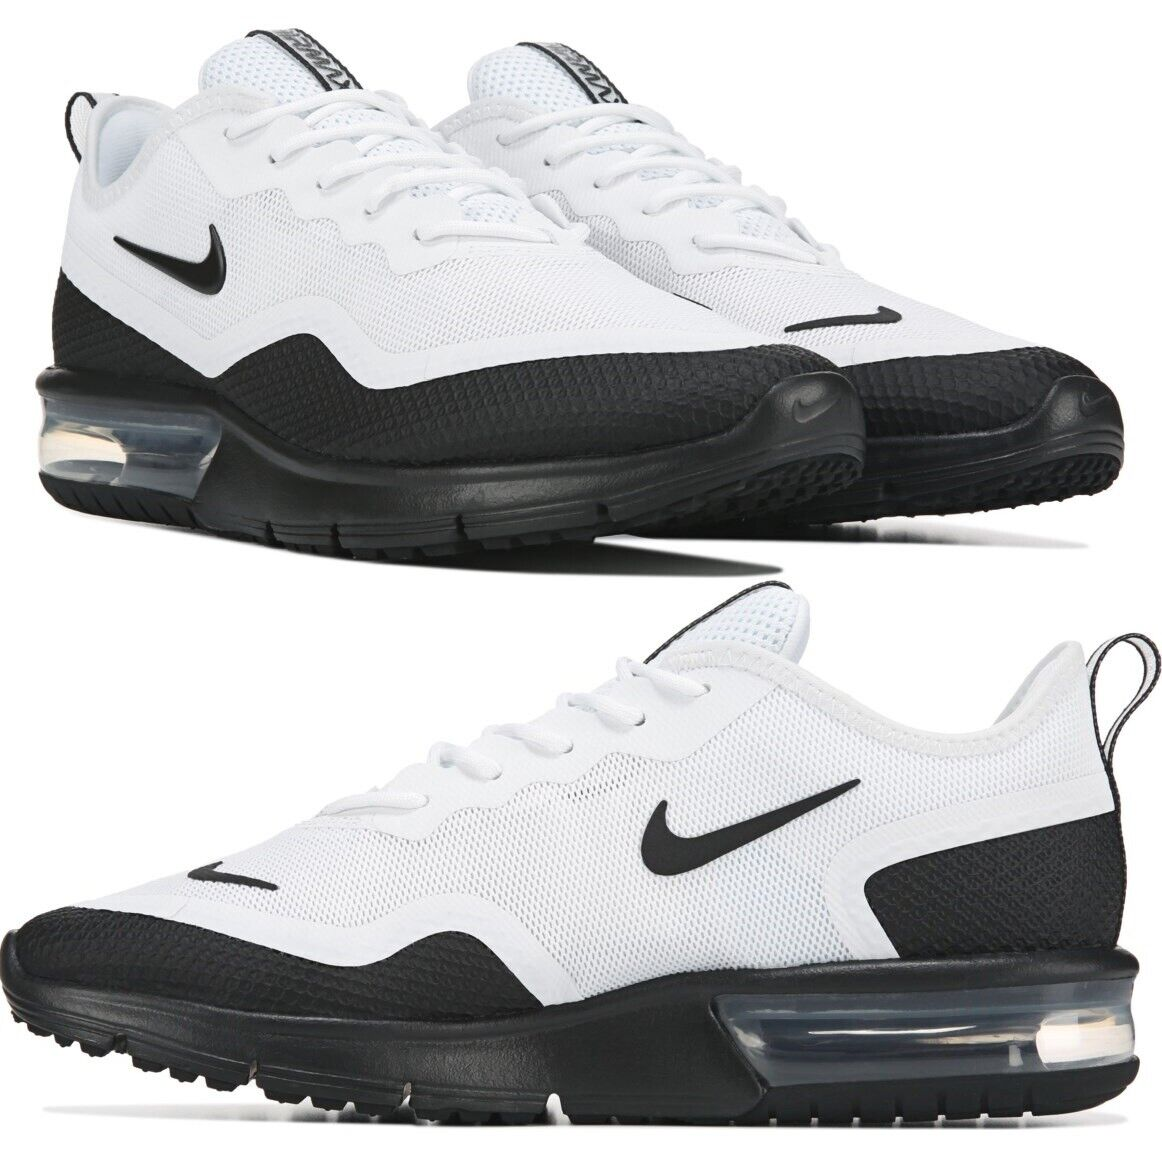 209895d1a0a1b Nike Air Max Sequent 4 White/Black Men's Running Shoes Lifestyle Comfy  Sneakers